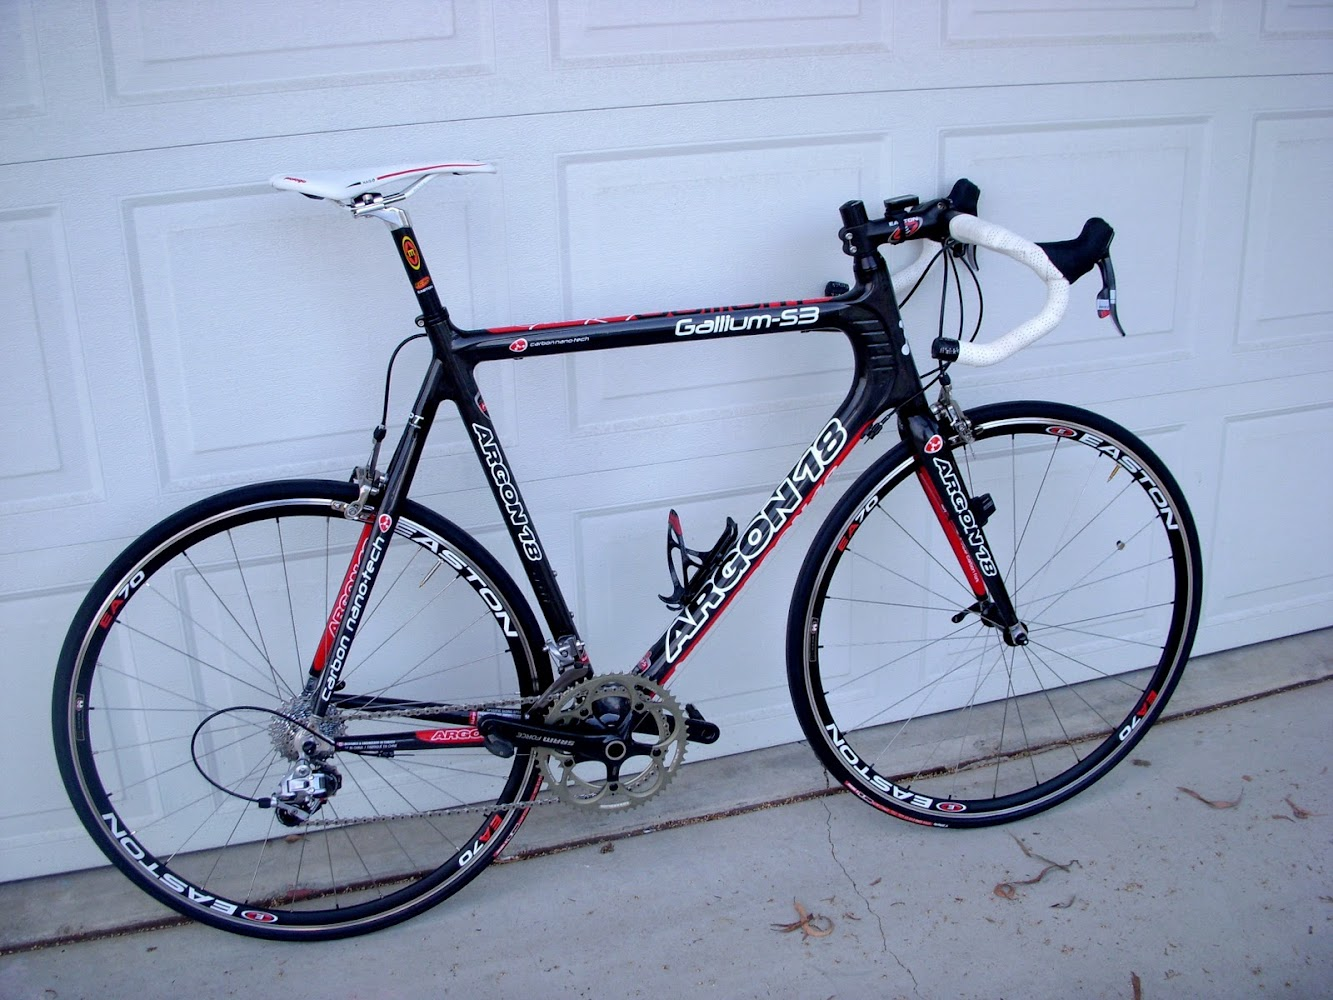 New bike - 2007 Argon18 Gallium